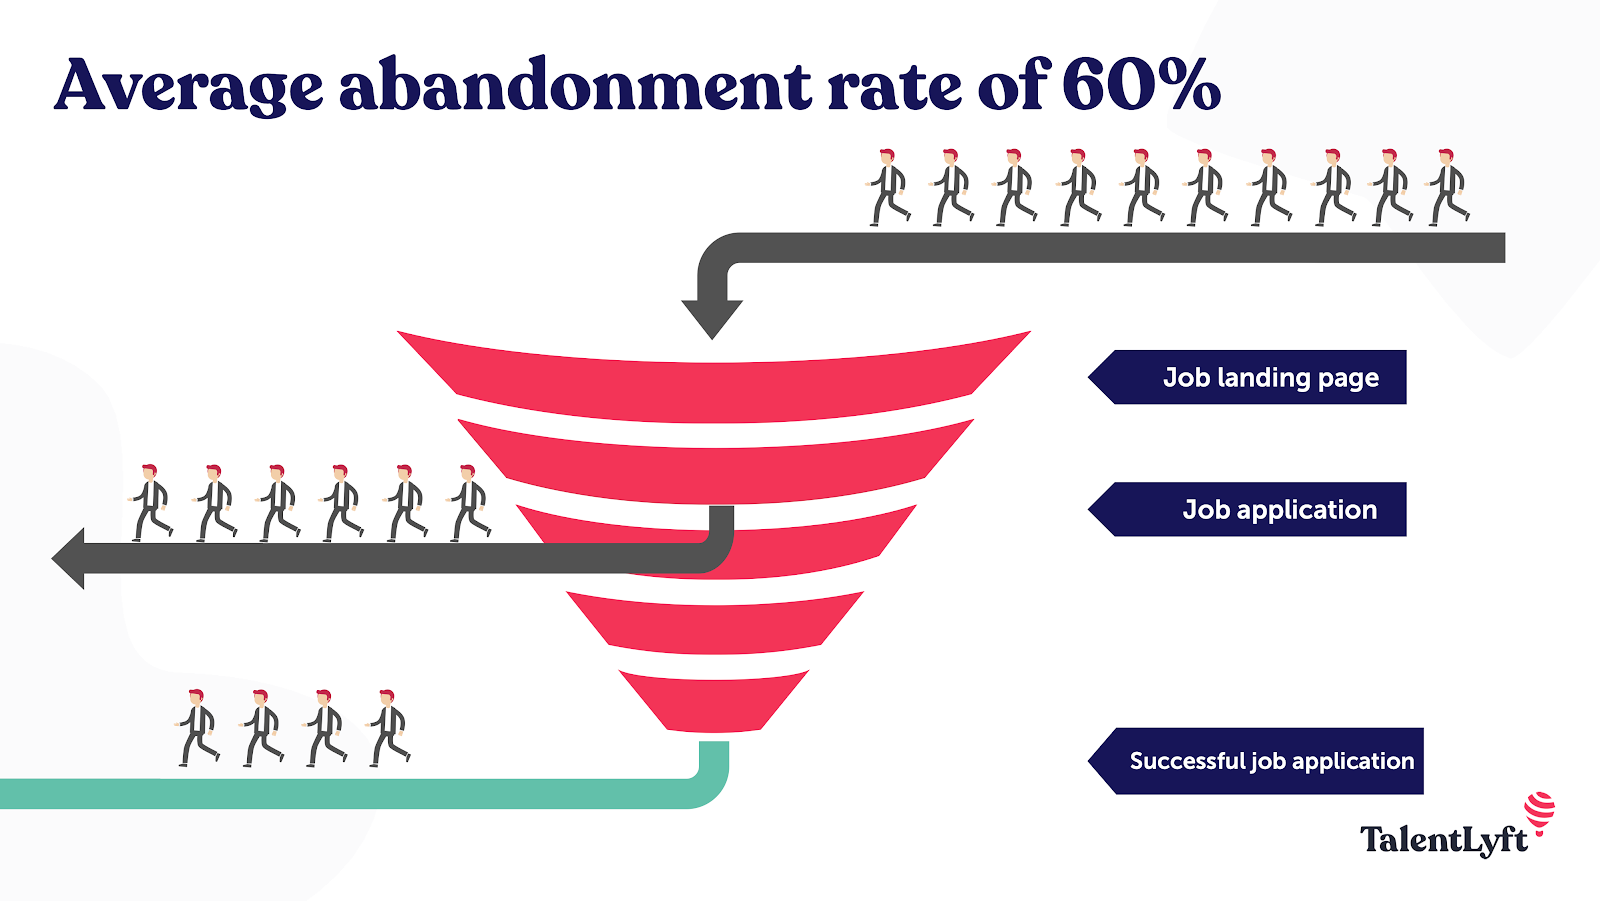 Average abandonment rate on career sites